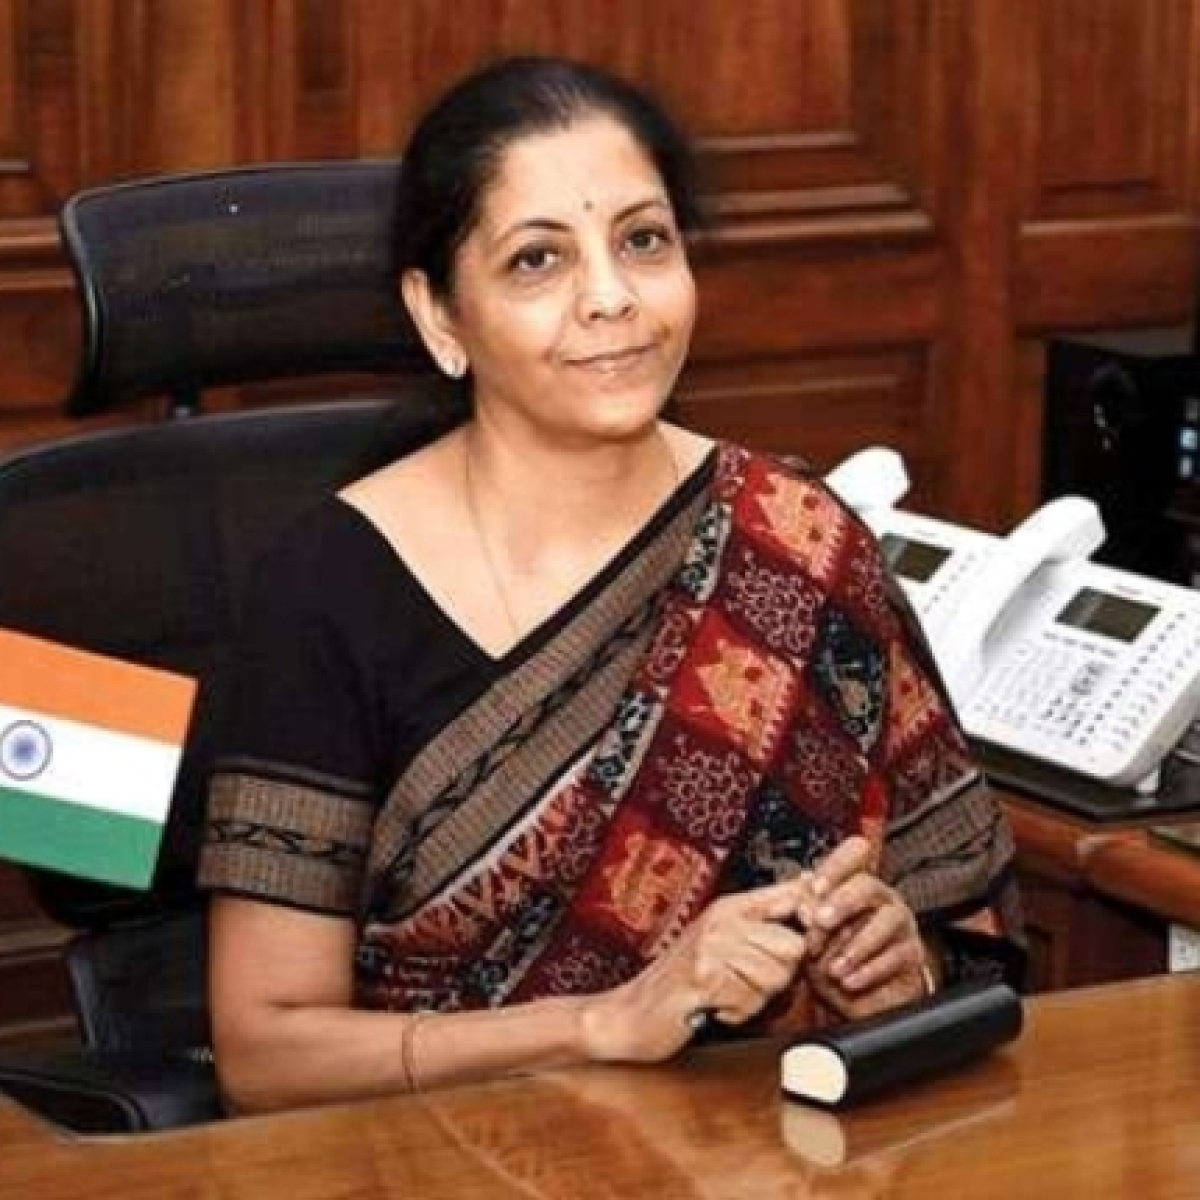 7 indirect taxation-related laws being amended: Finance Minister Nirmala Sitharaman